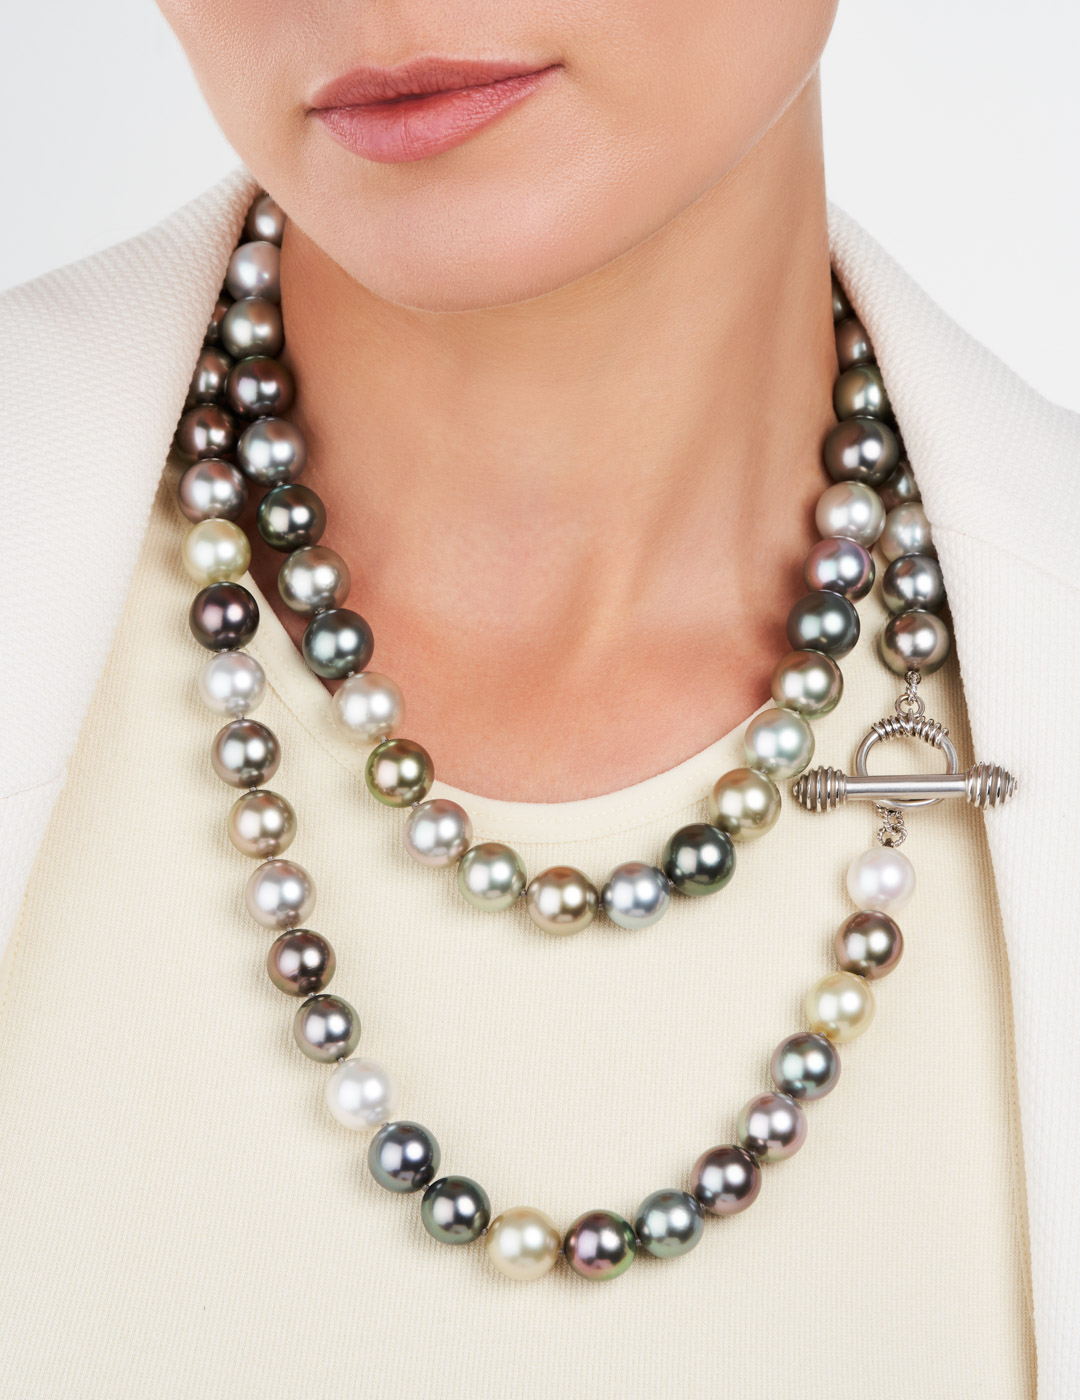 mish_necklaces_Multi Pearl-Orbiting-NK-3